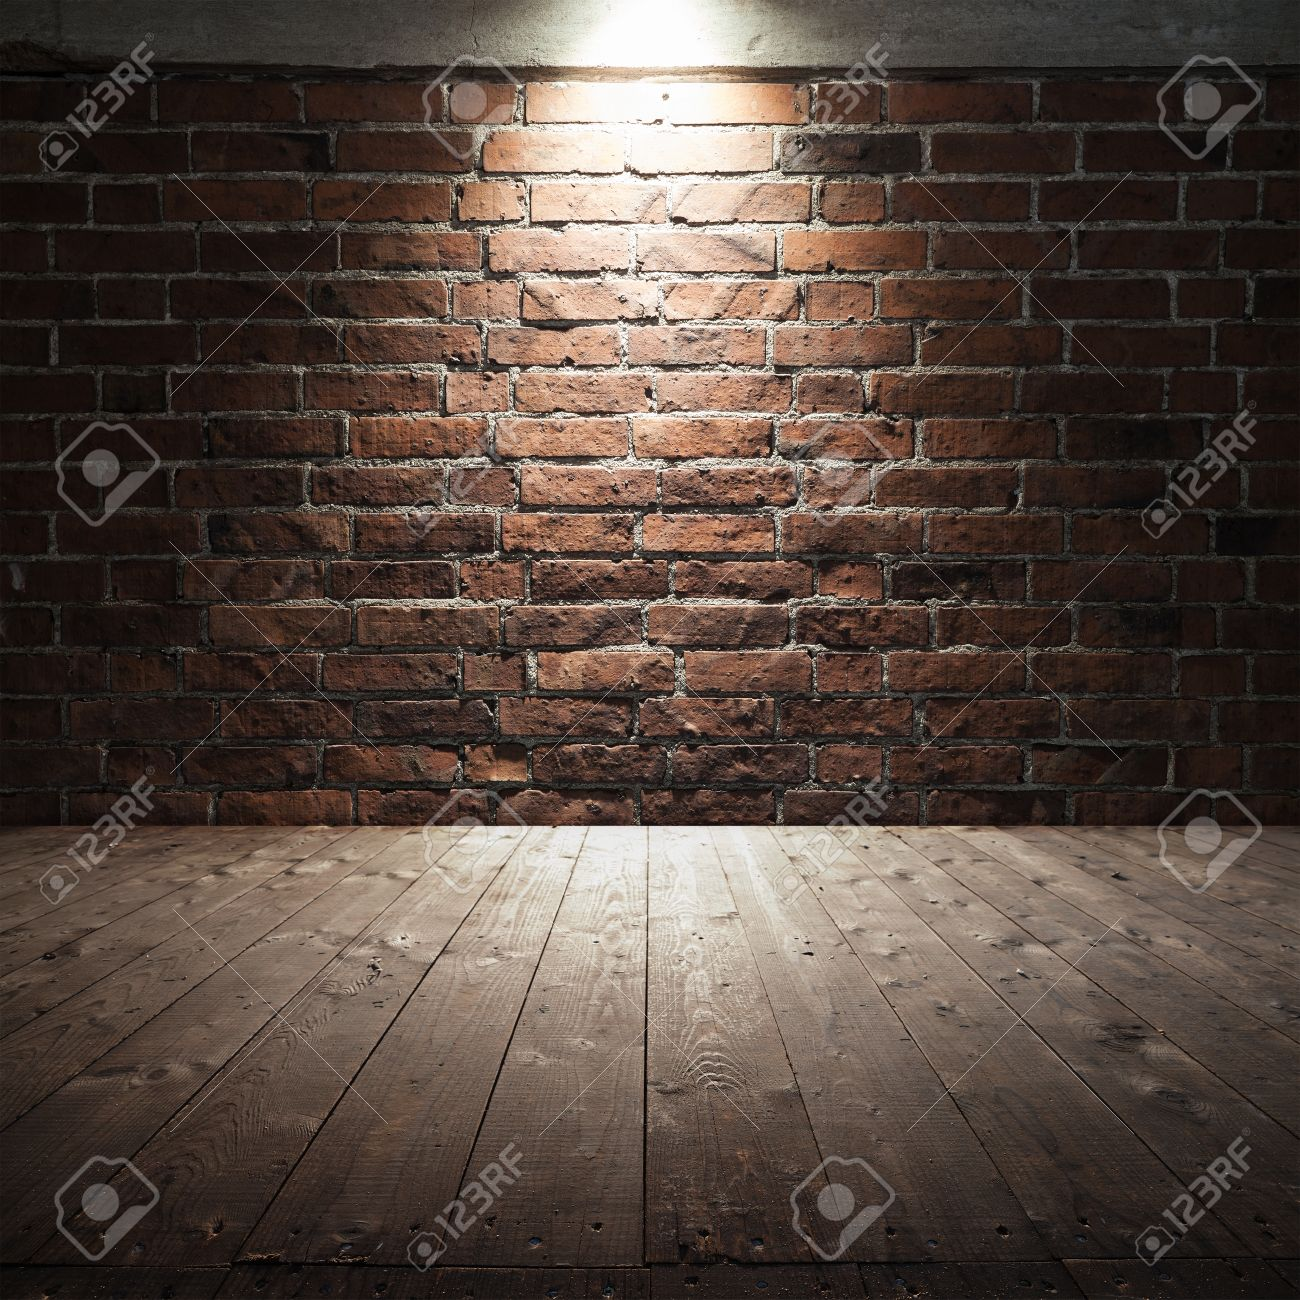 abstract dark interior background with wooden floor and red brick